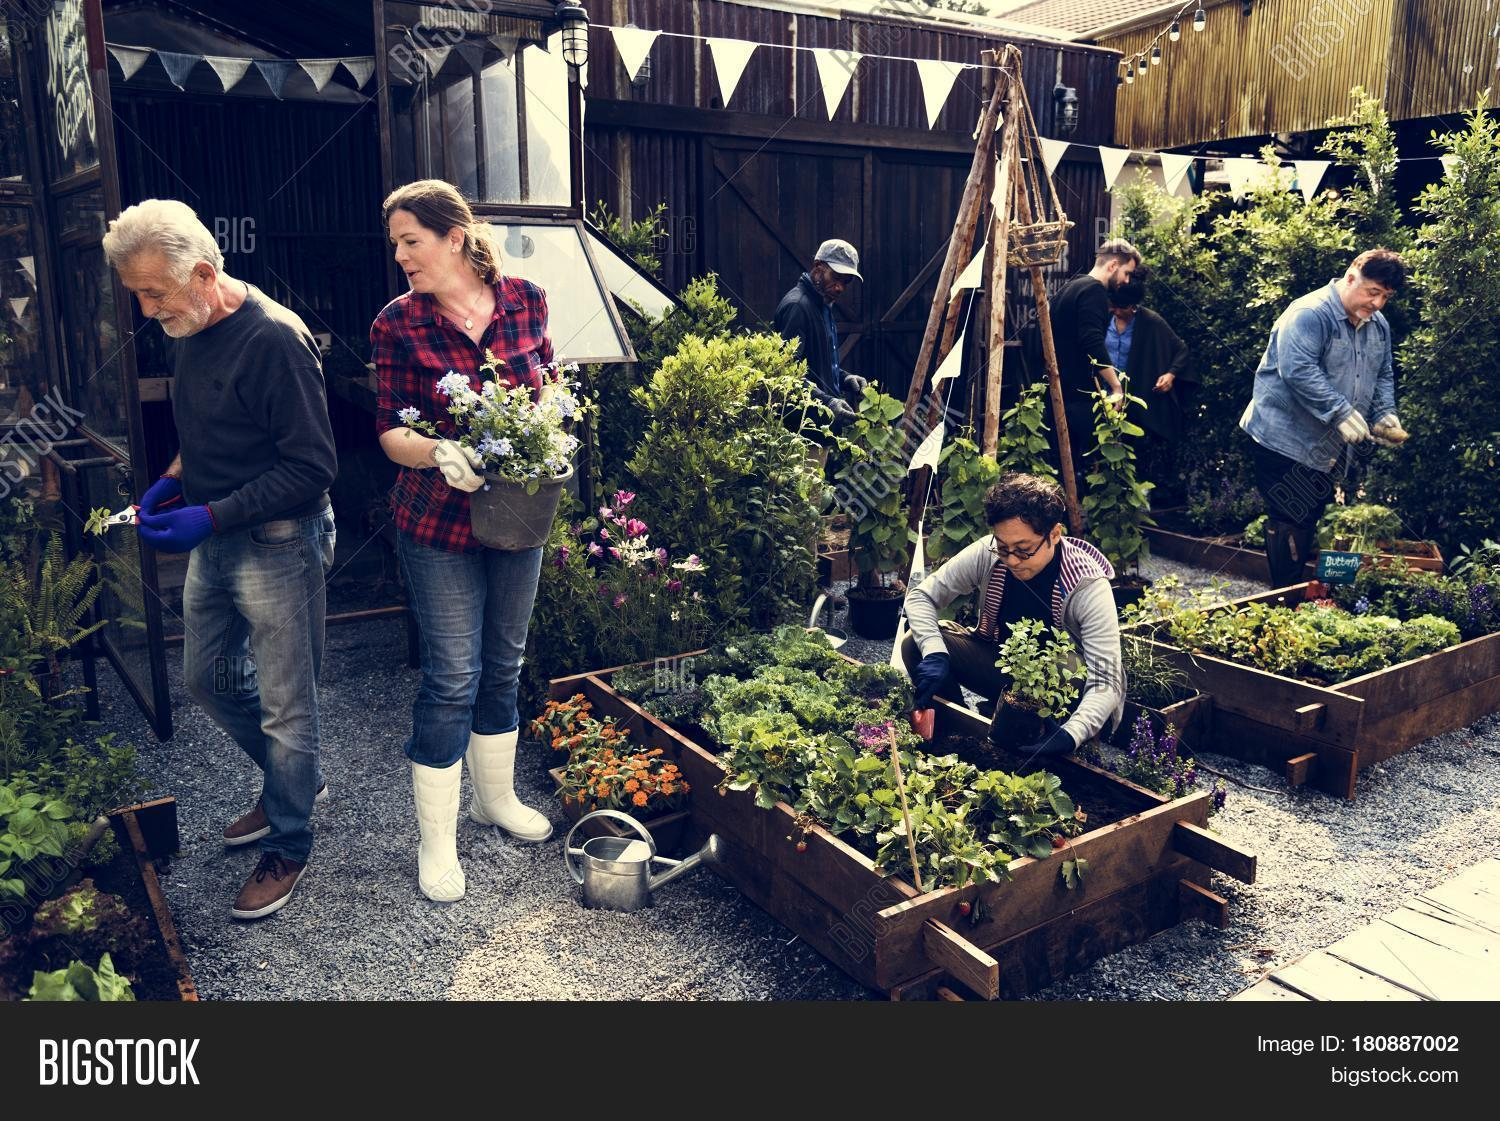 Group People Gardening Image & Photo (Free Trial) | Bigstock